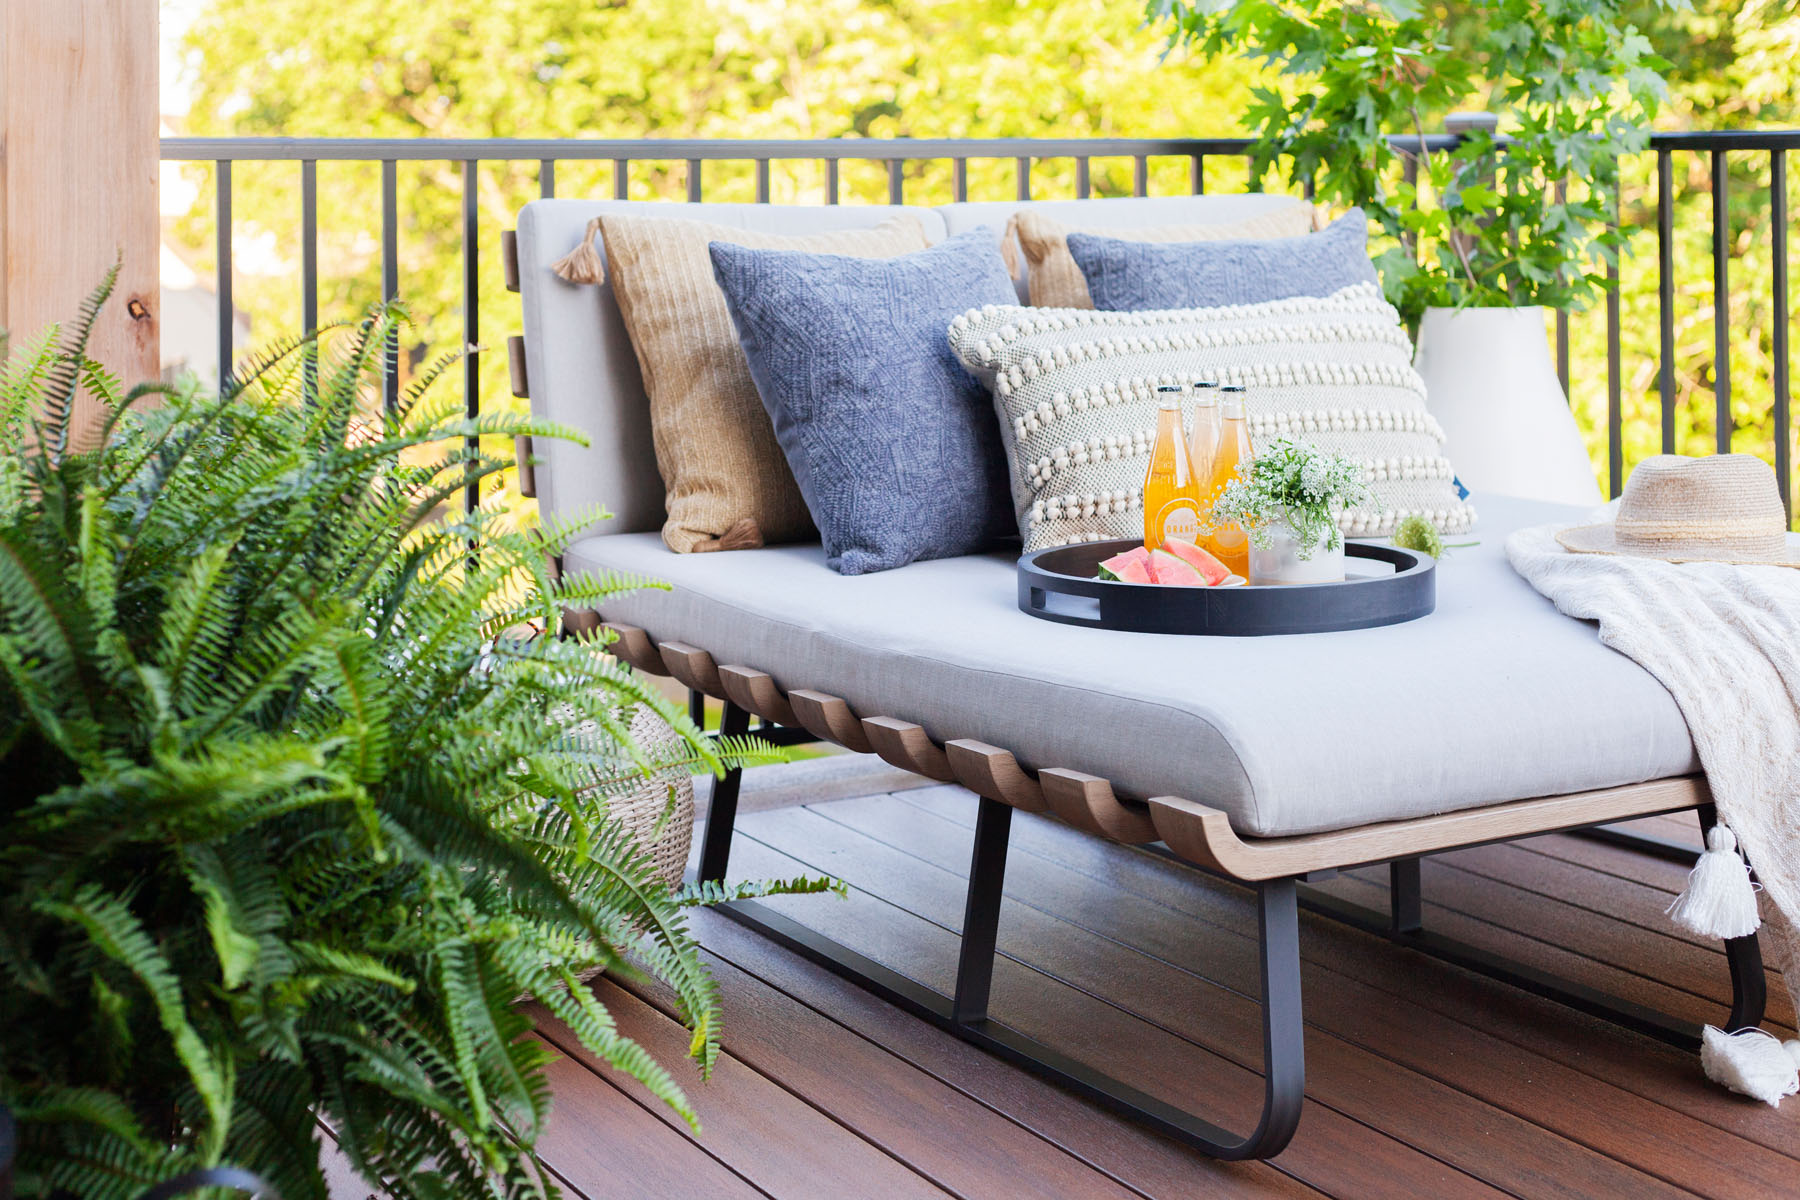 Scout-and-Nimble-Patio-Furniture_11.jpg